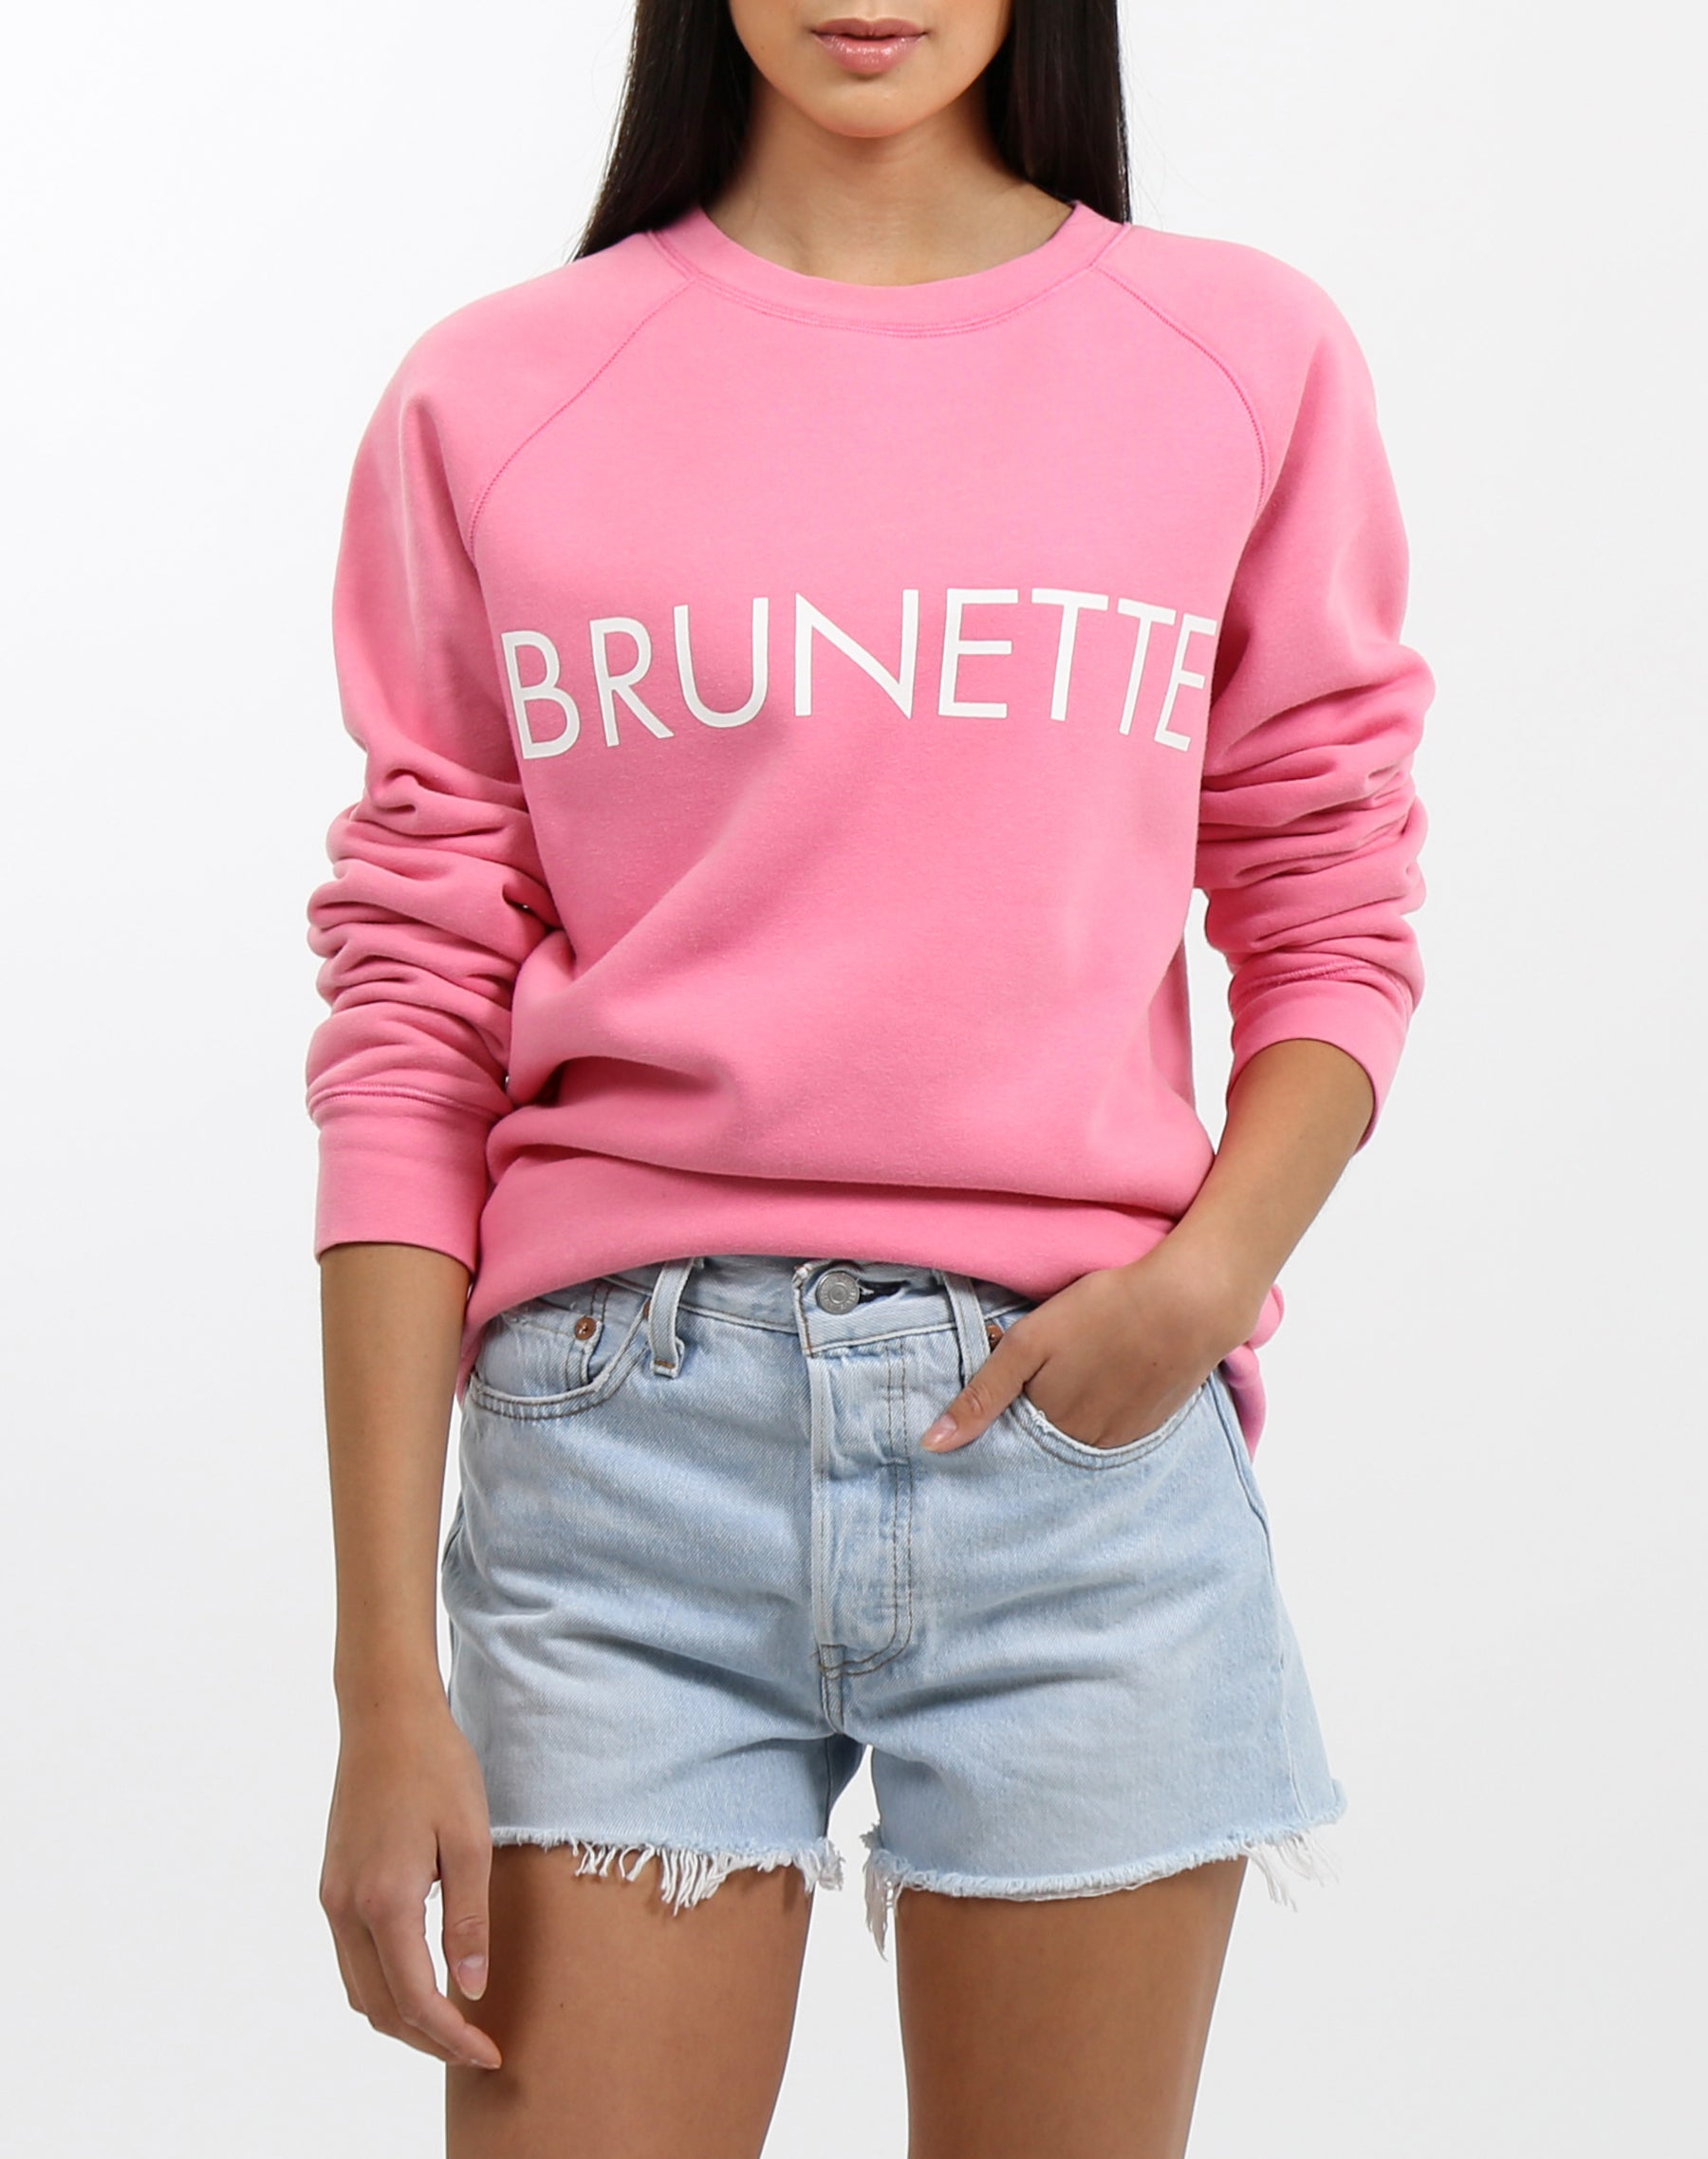 Photo 2 of the Brunette classic crew neck sweatshirt in hot pink by Brunette the label.